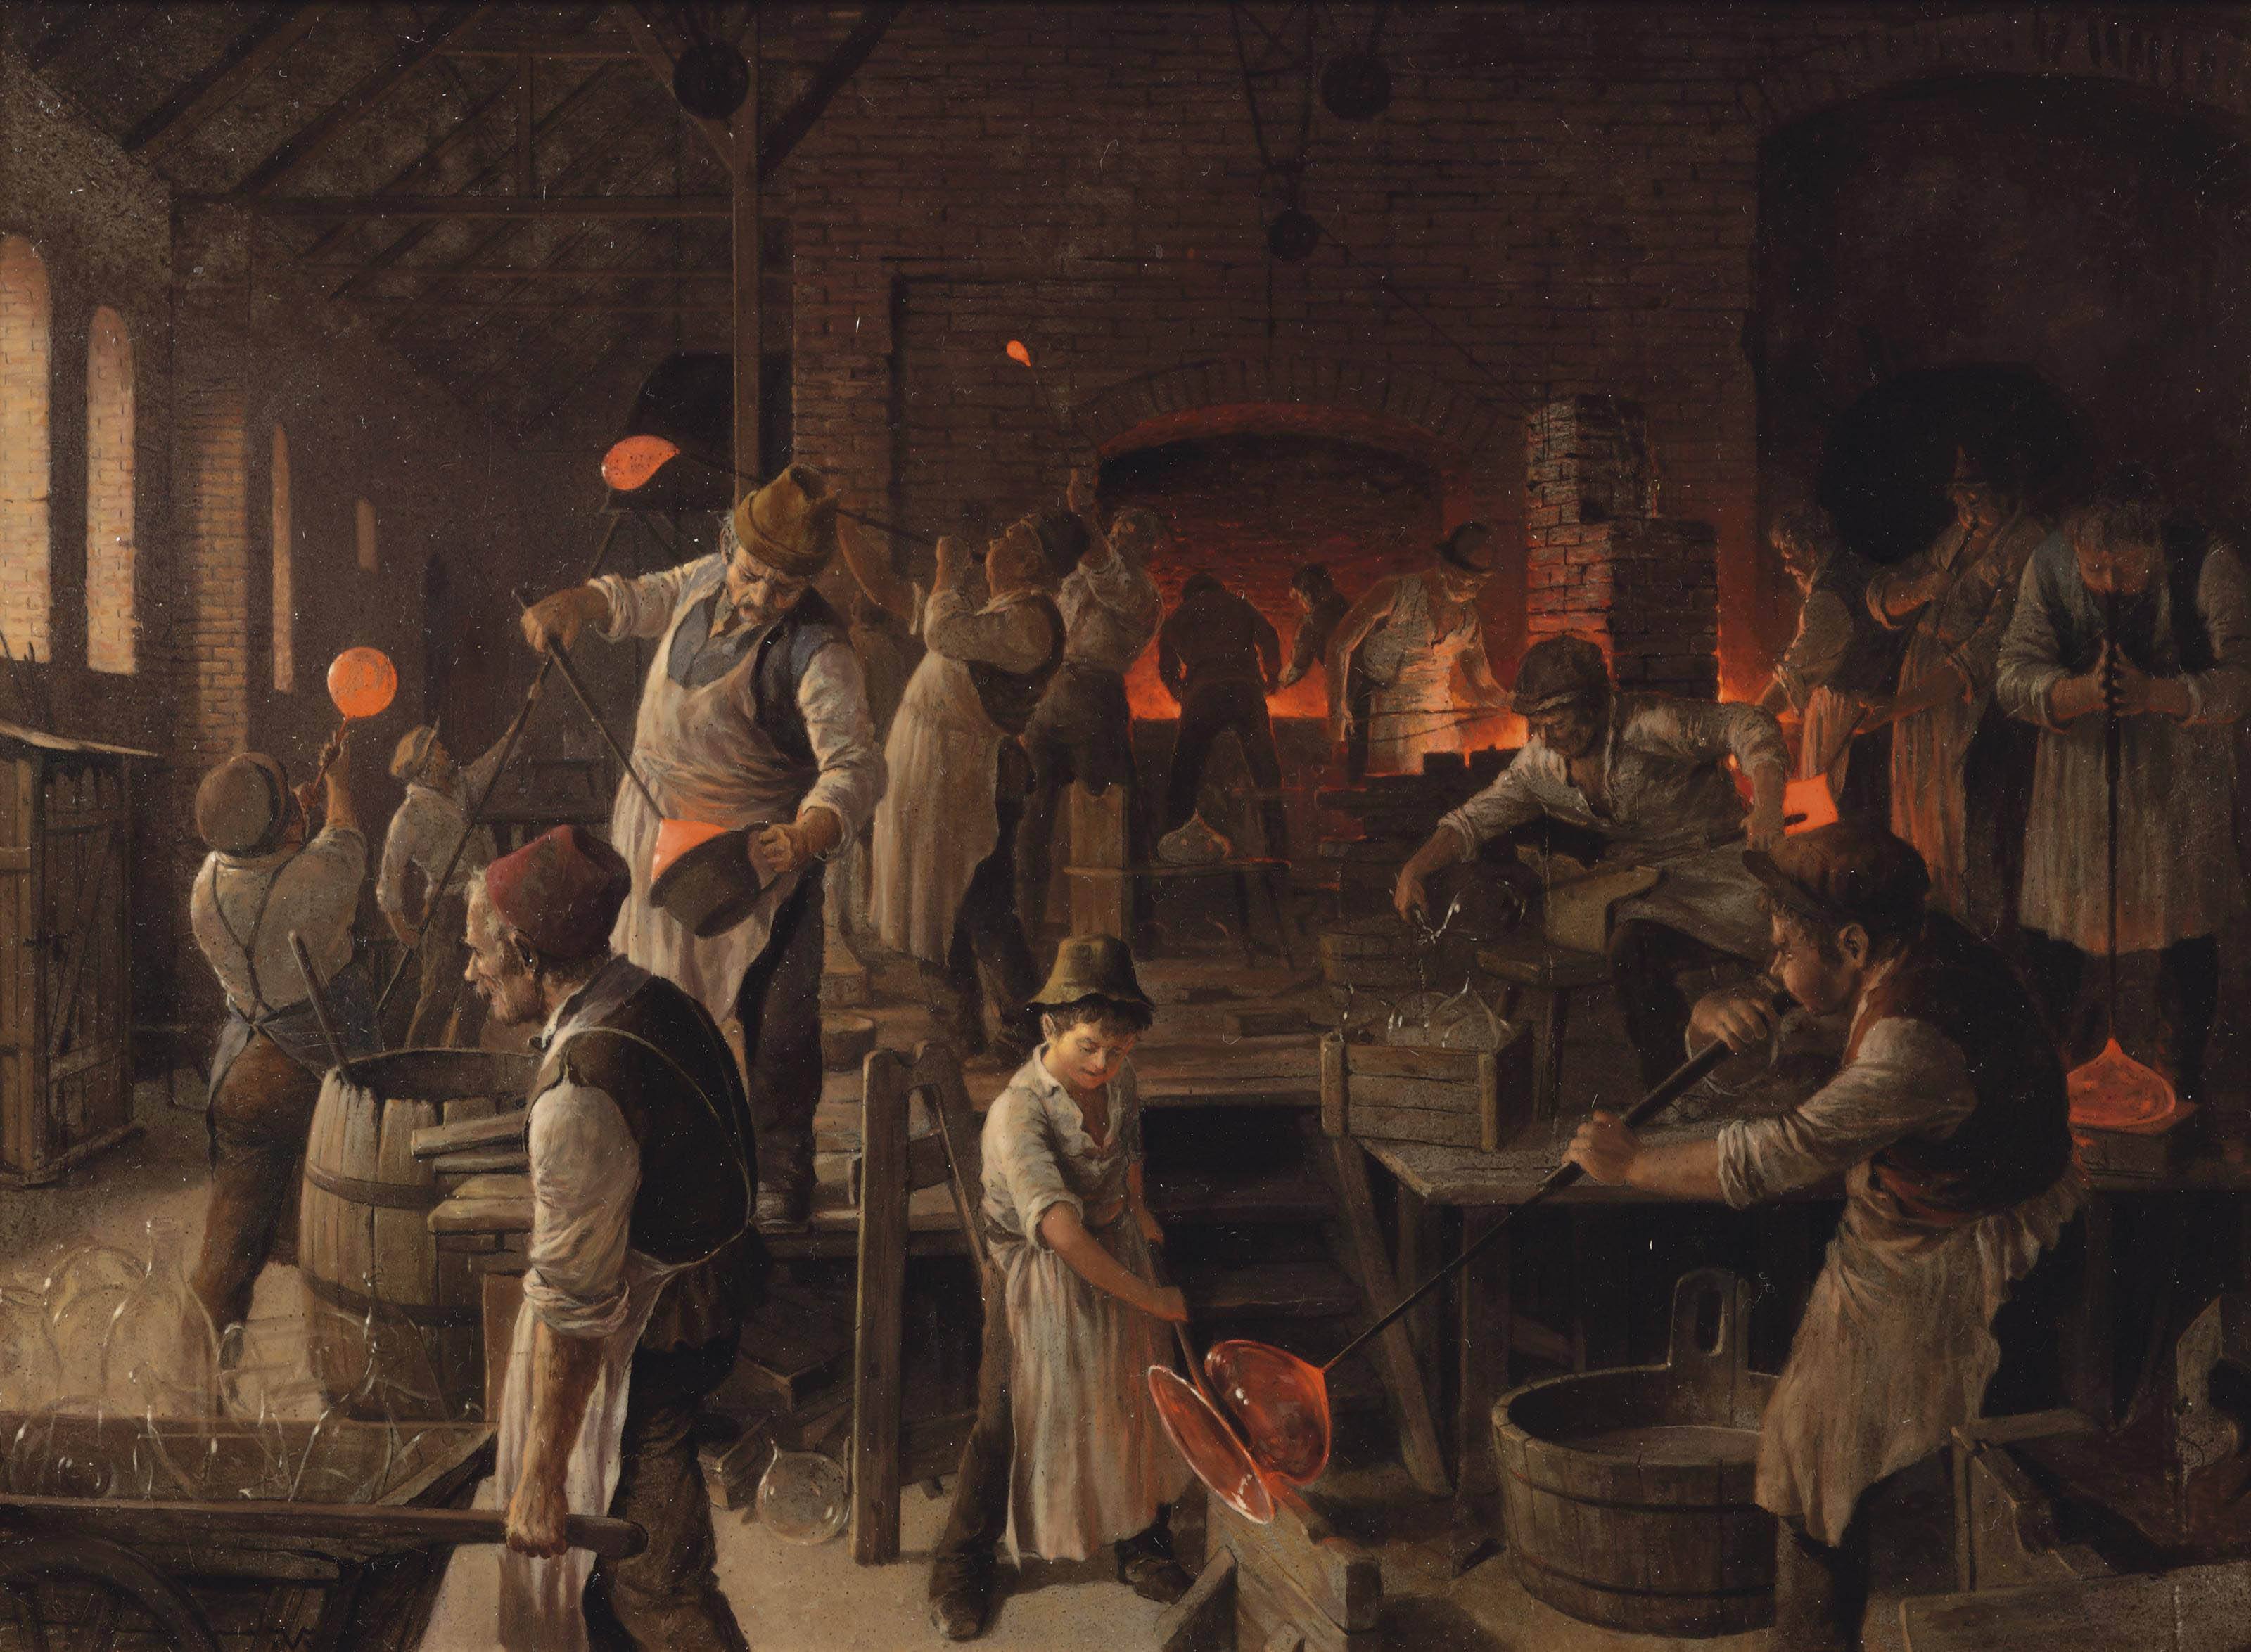 The glass blowers